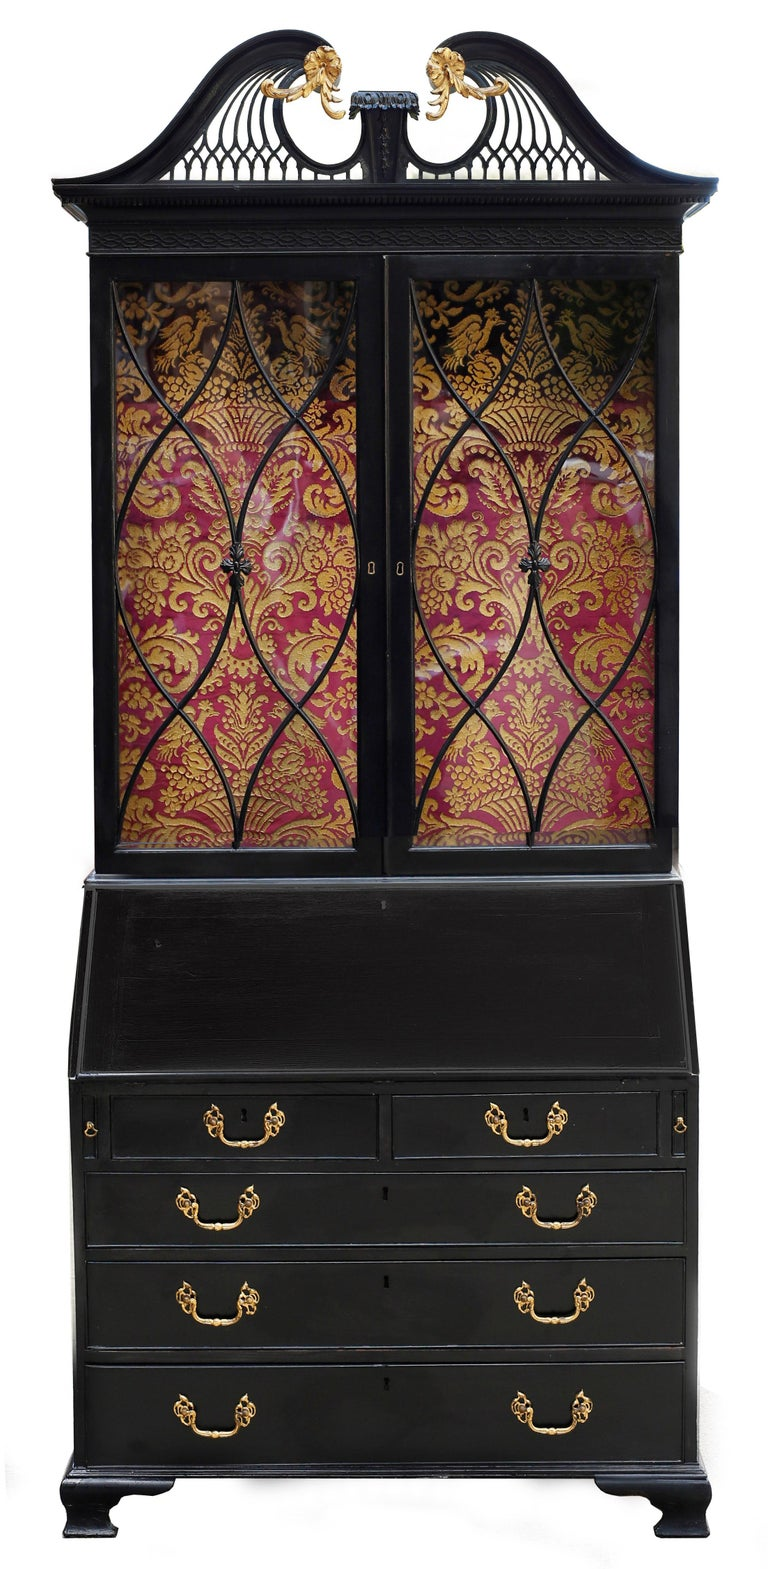 An exquisite English Georgian secretary bookcase of exceptional design and detail. The swan-necked broken pediment features gilt acanthus flourishes and rosettes with a central plinth with graduated bellflowers. The tympanum is composed of delicate